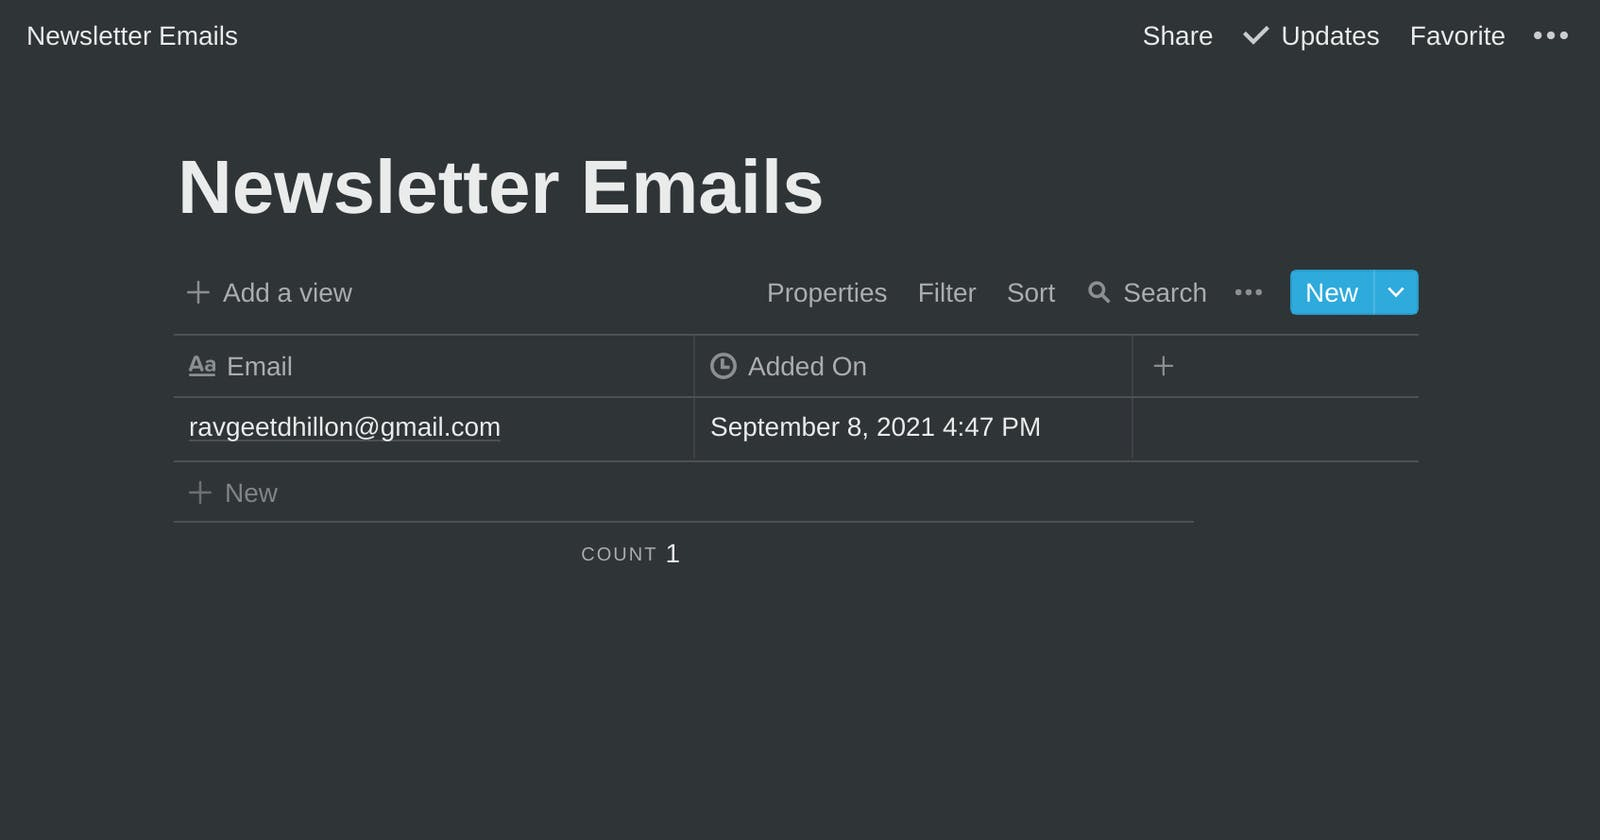 Collect Email Signups With the Notion API